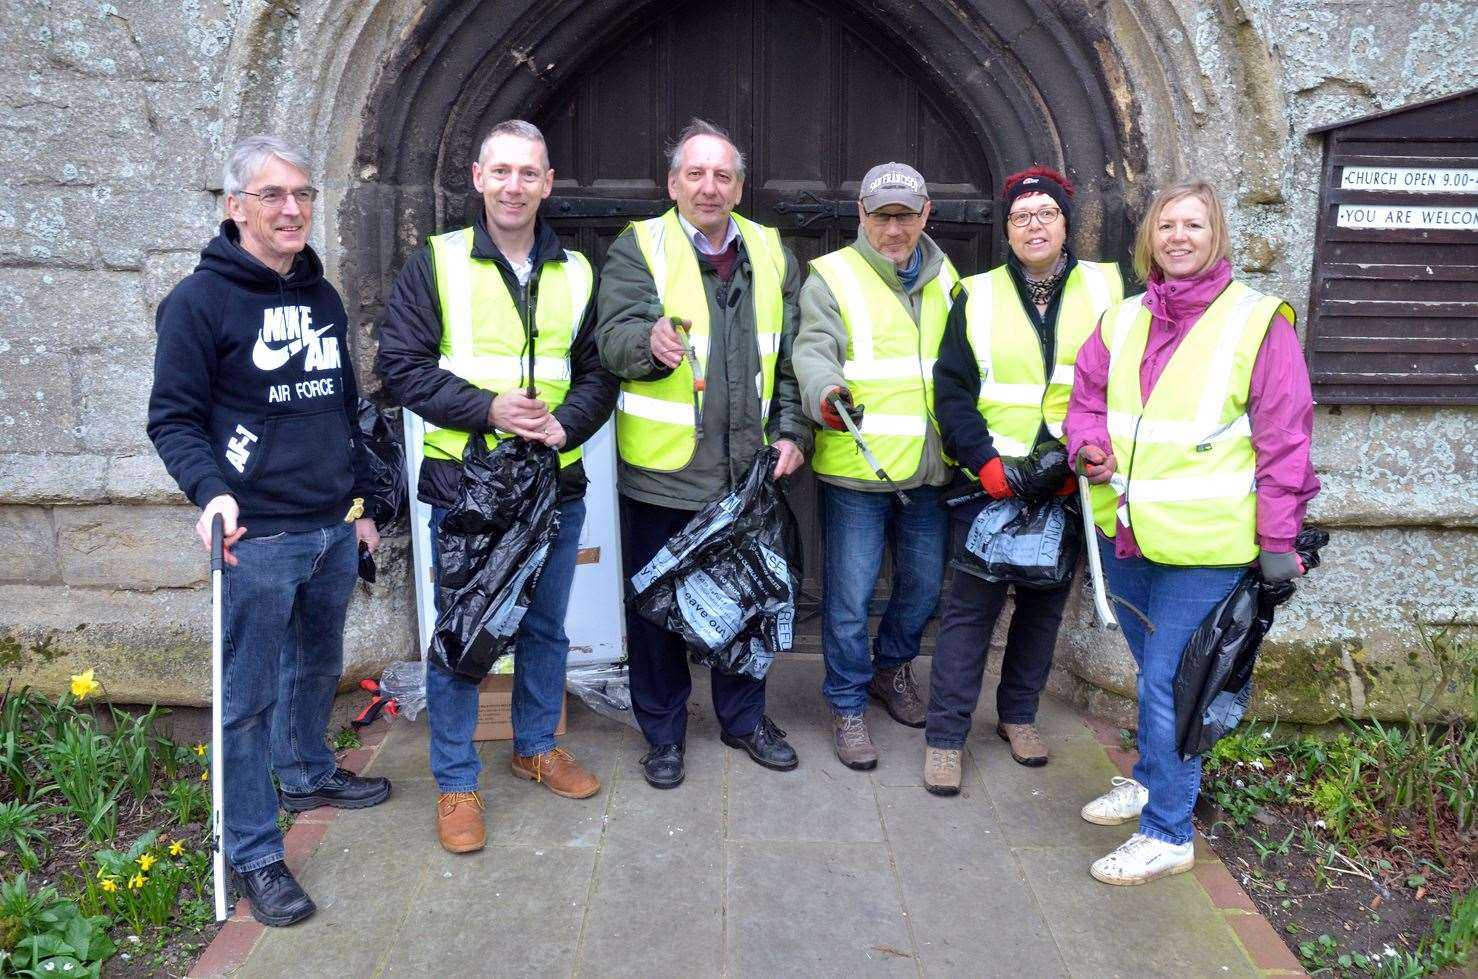 Jim Scarsbrook, Couns Andrew Woolf and Anthony Casson, Nigel Baker, Mandy Baker and Wendy Woolf outside Moulton's All Saints Church before a clean-up of the village in February.Photo (TIM WILSON): SG-230219-010TW